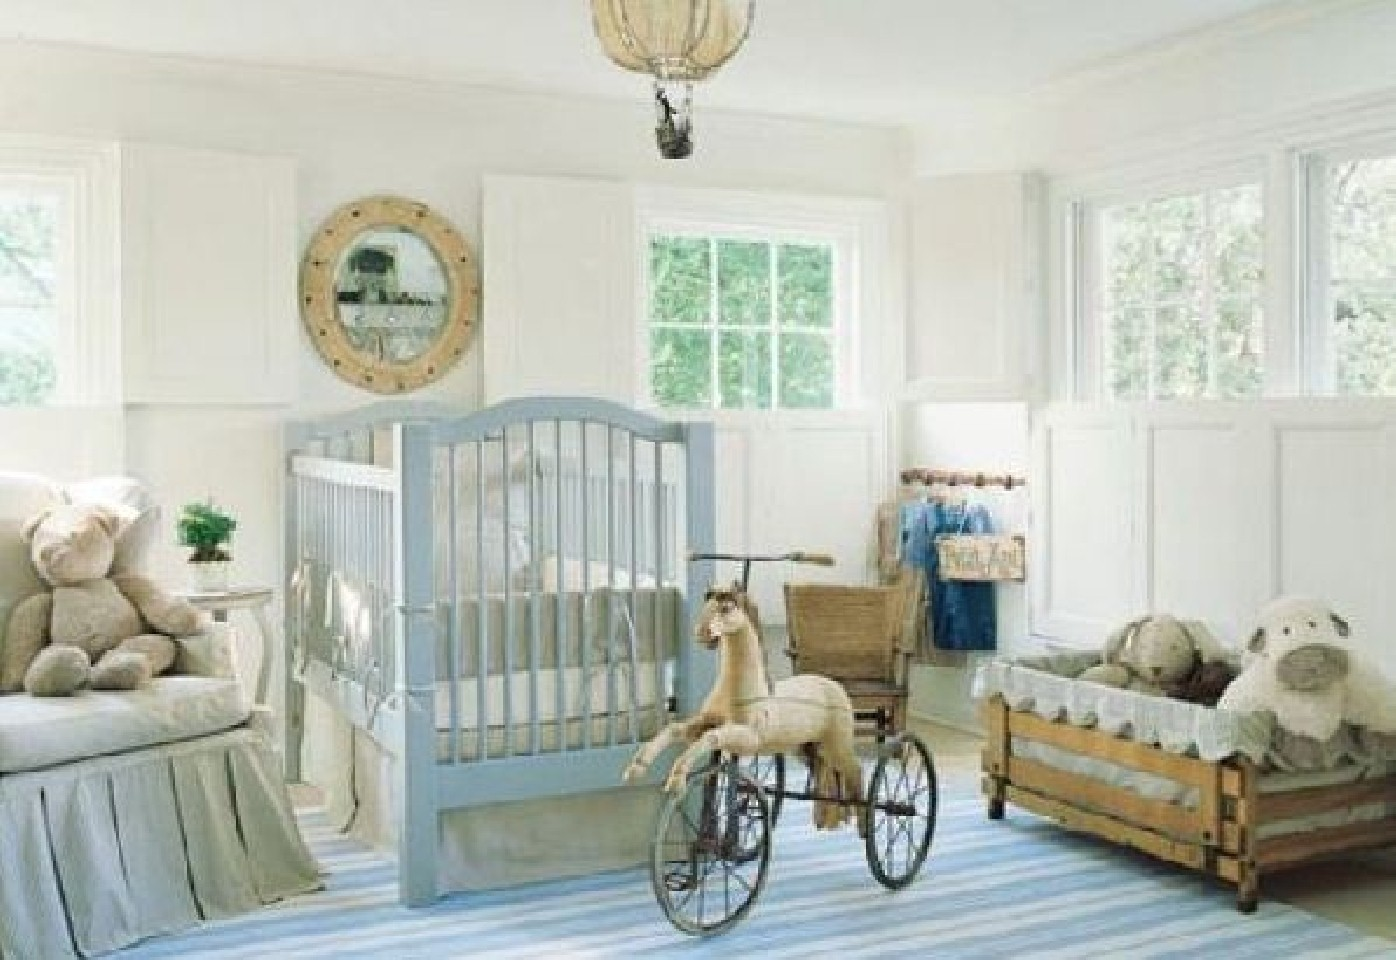 White Painted Wall Light Blue Crib Wooden Rustic Toy Storage Comfortbale Rocking Chair Stripes